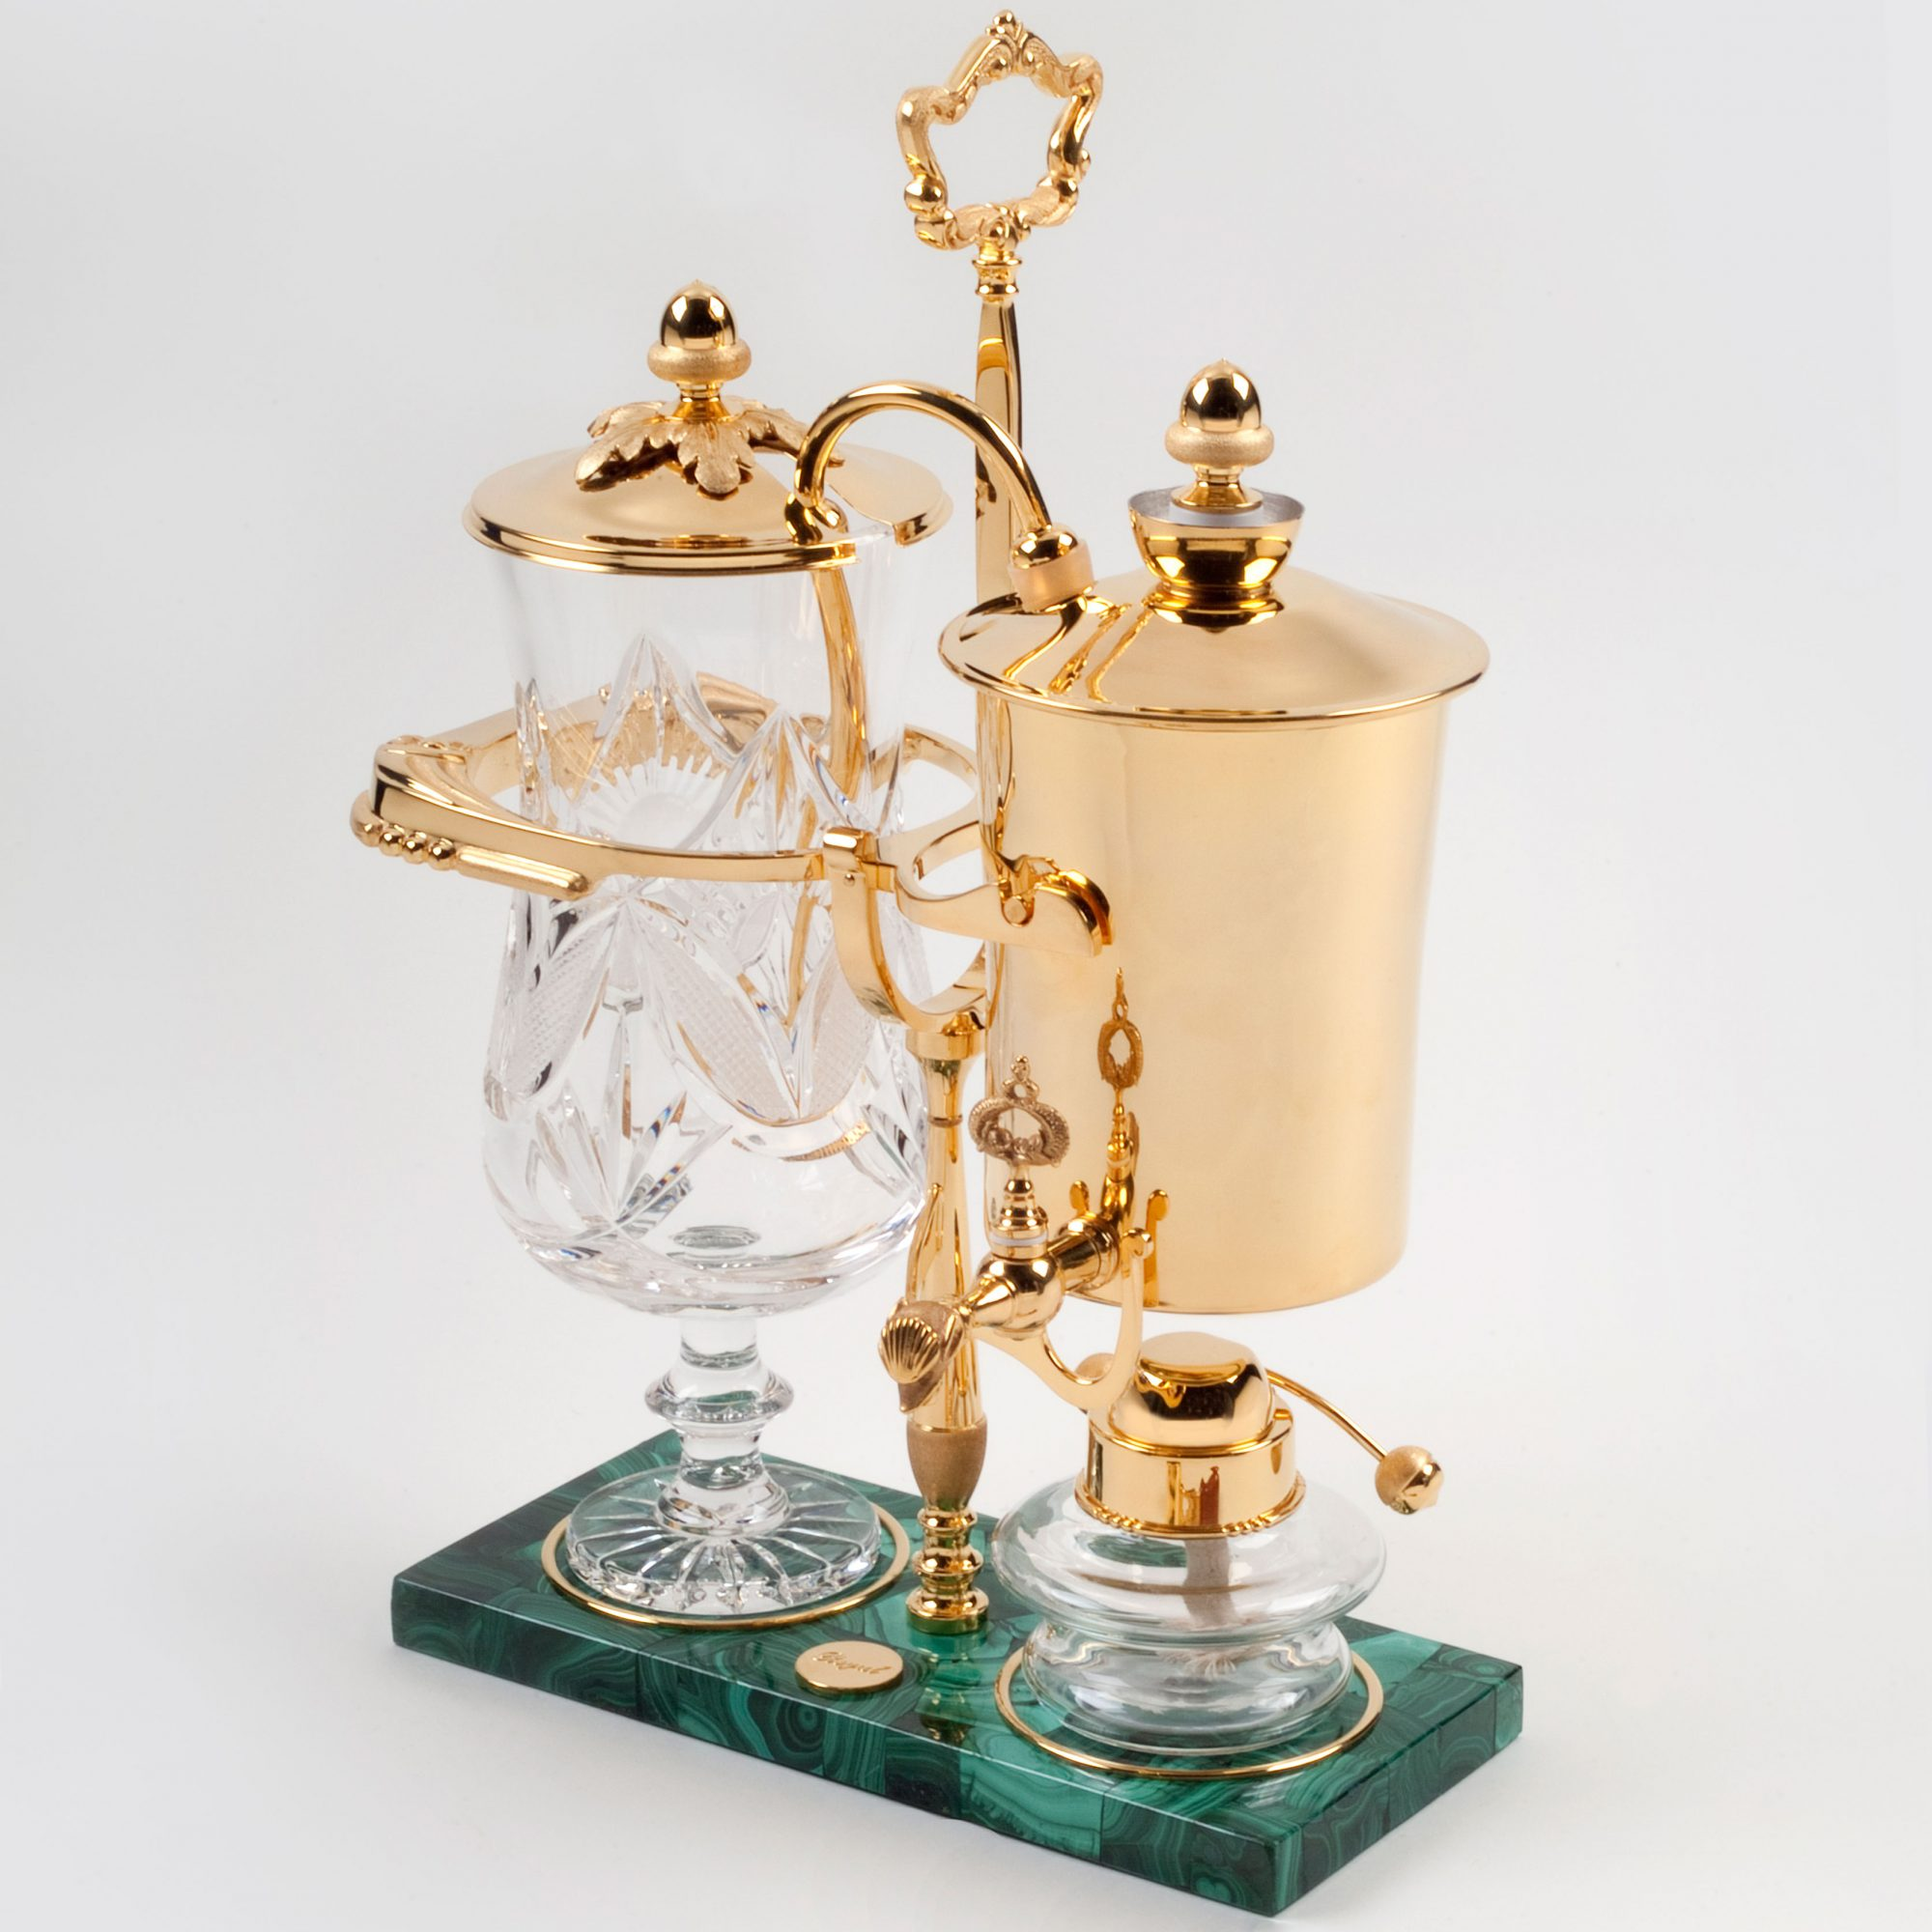 You Can Buy a Gold-Plated Coffee Maker If You Need Something To Do With Your Extra $18,000